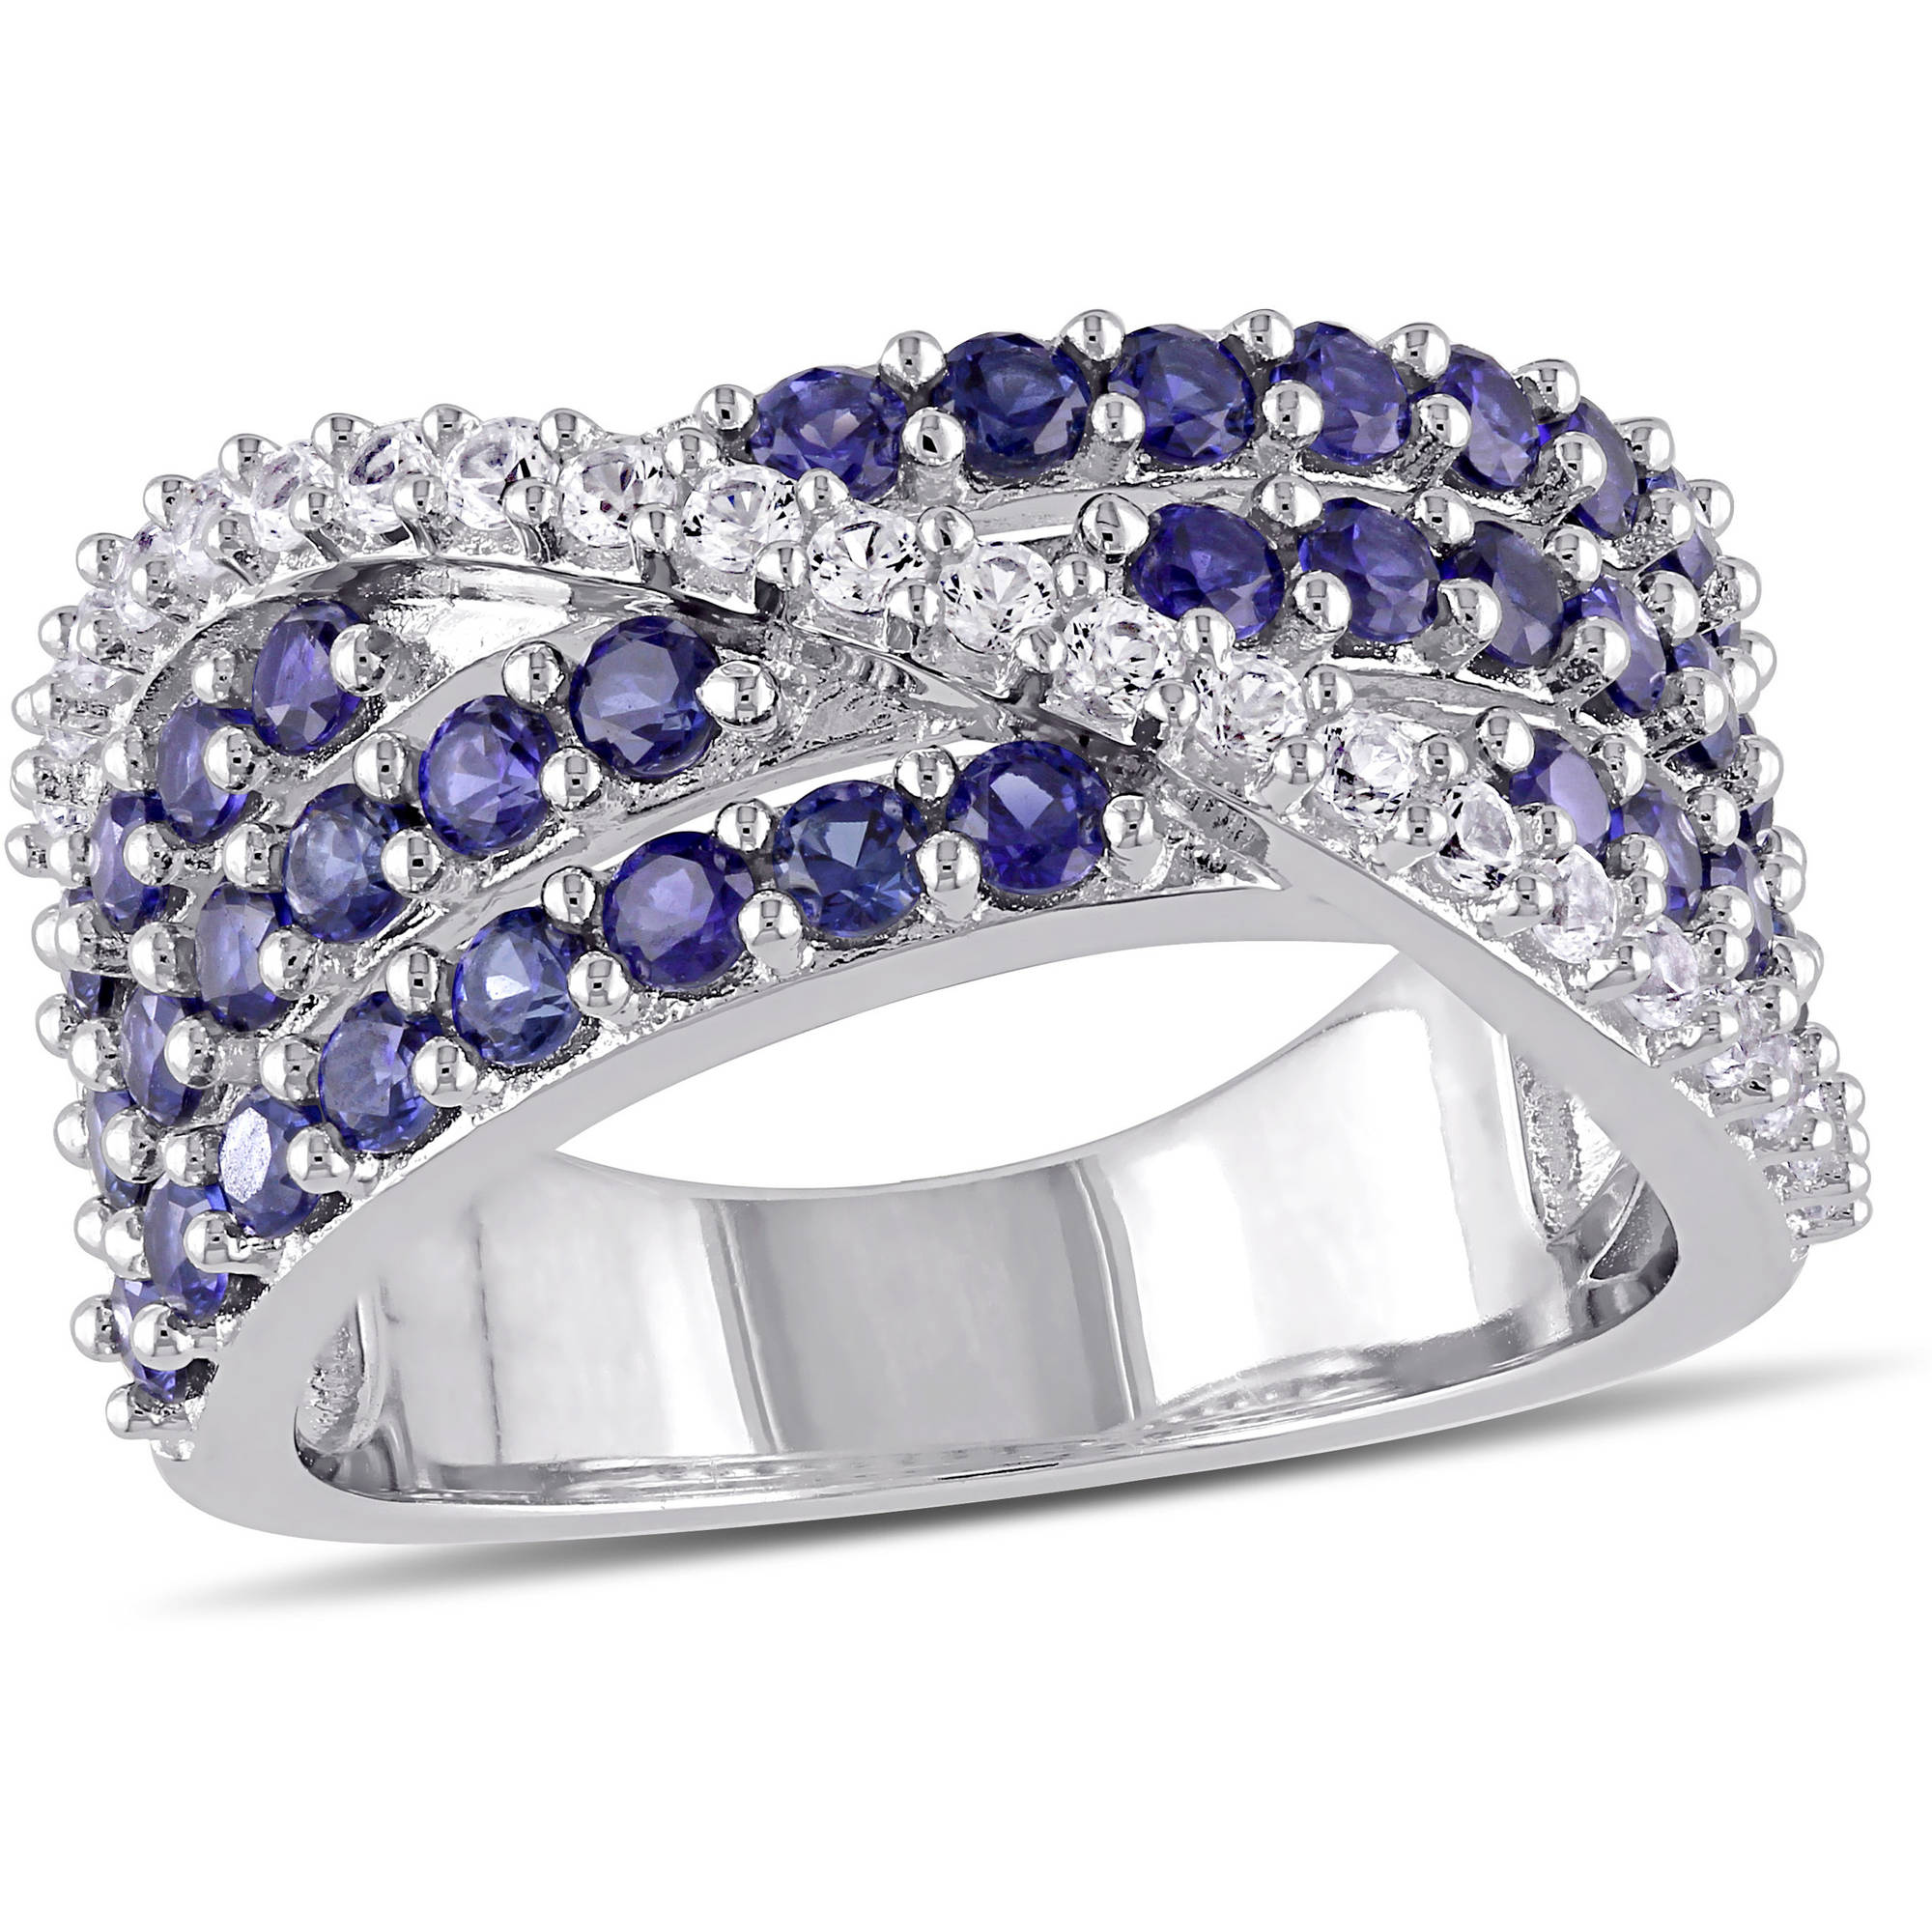 Tangelo 2-1/4 Carat T.G.W. Created Blue and White Sapphire Sterling Silver Cross-Over Anniversary Ring